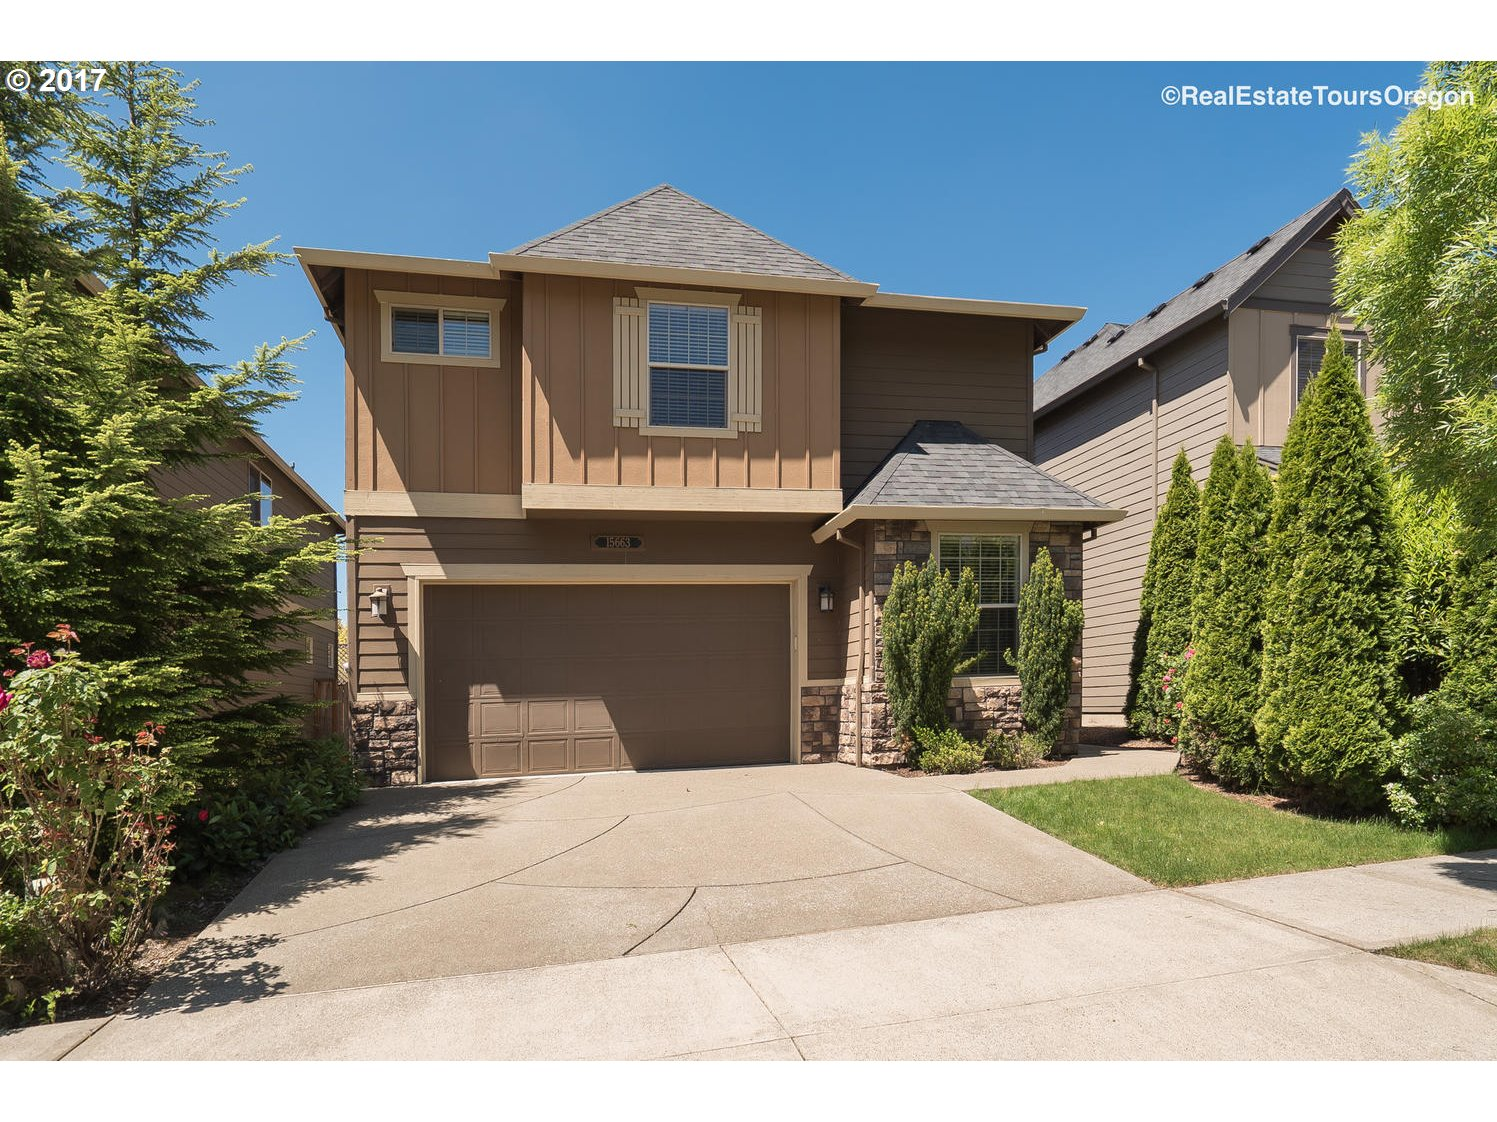 15663 SW 81ST AVE, Tigard, OR 97224